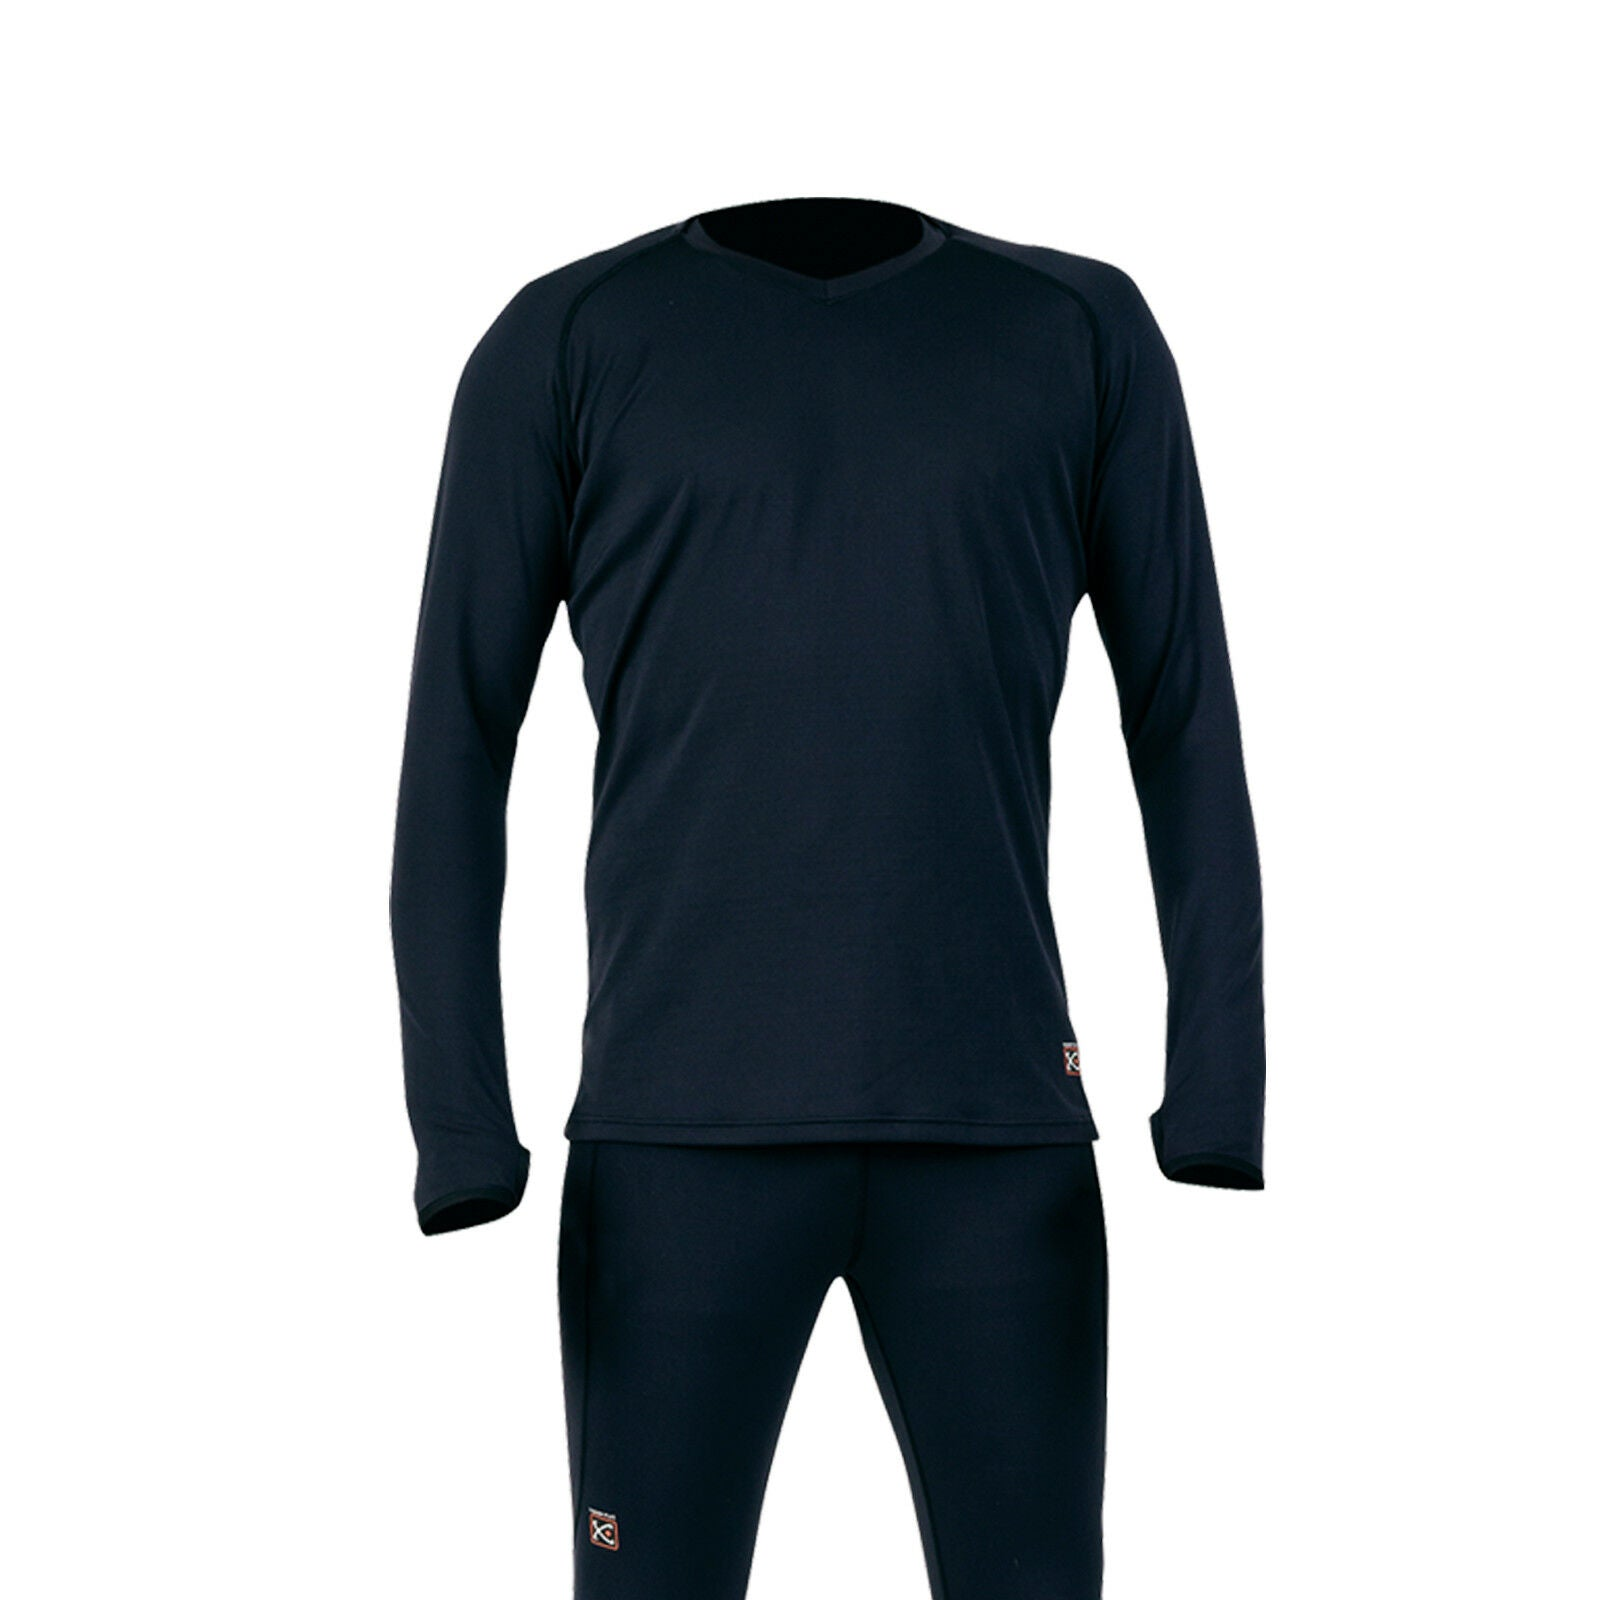 Women's Aqualung Fusion Plus Base Layers Women's